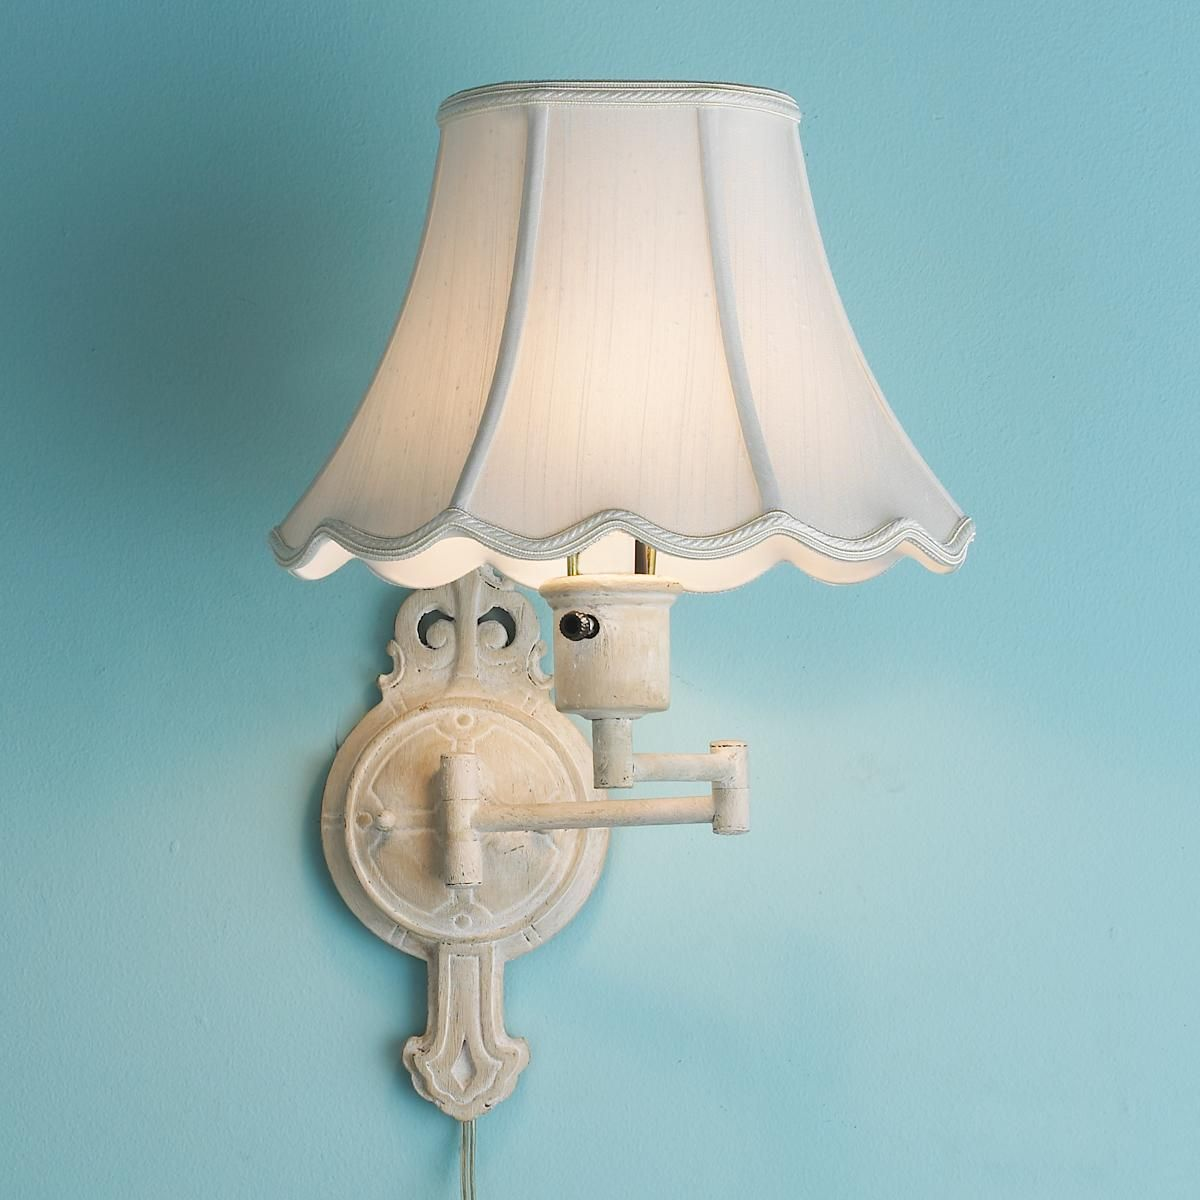 Chic Lamps: Shabby French Chic Swing Arm Wall Lamp